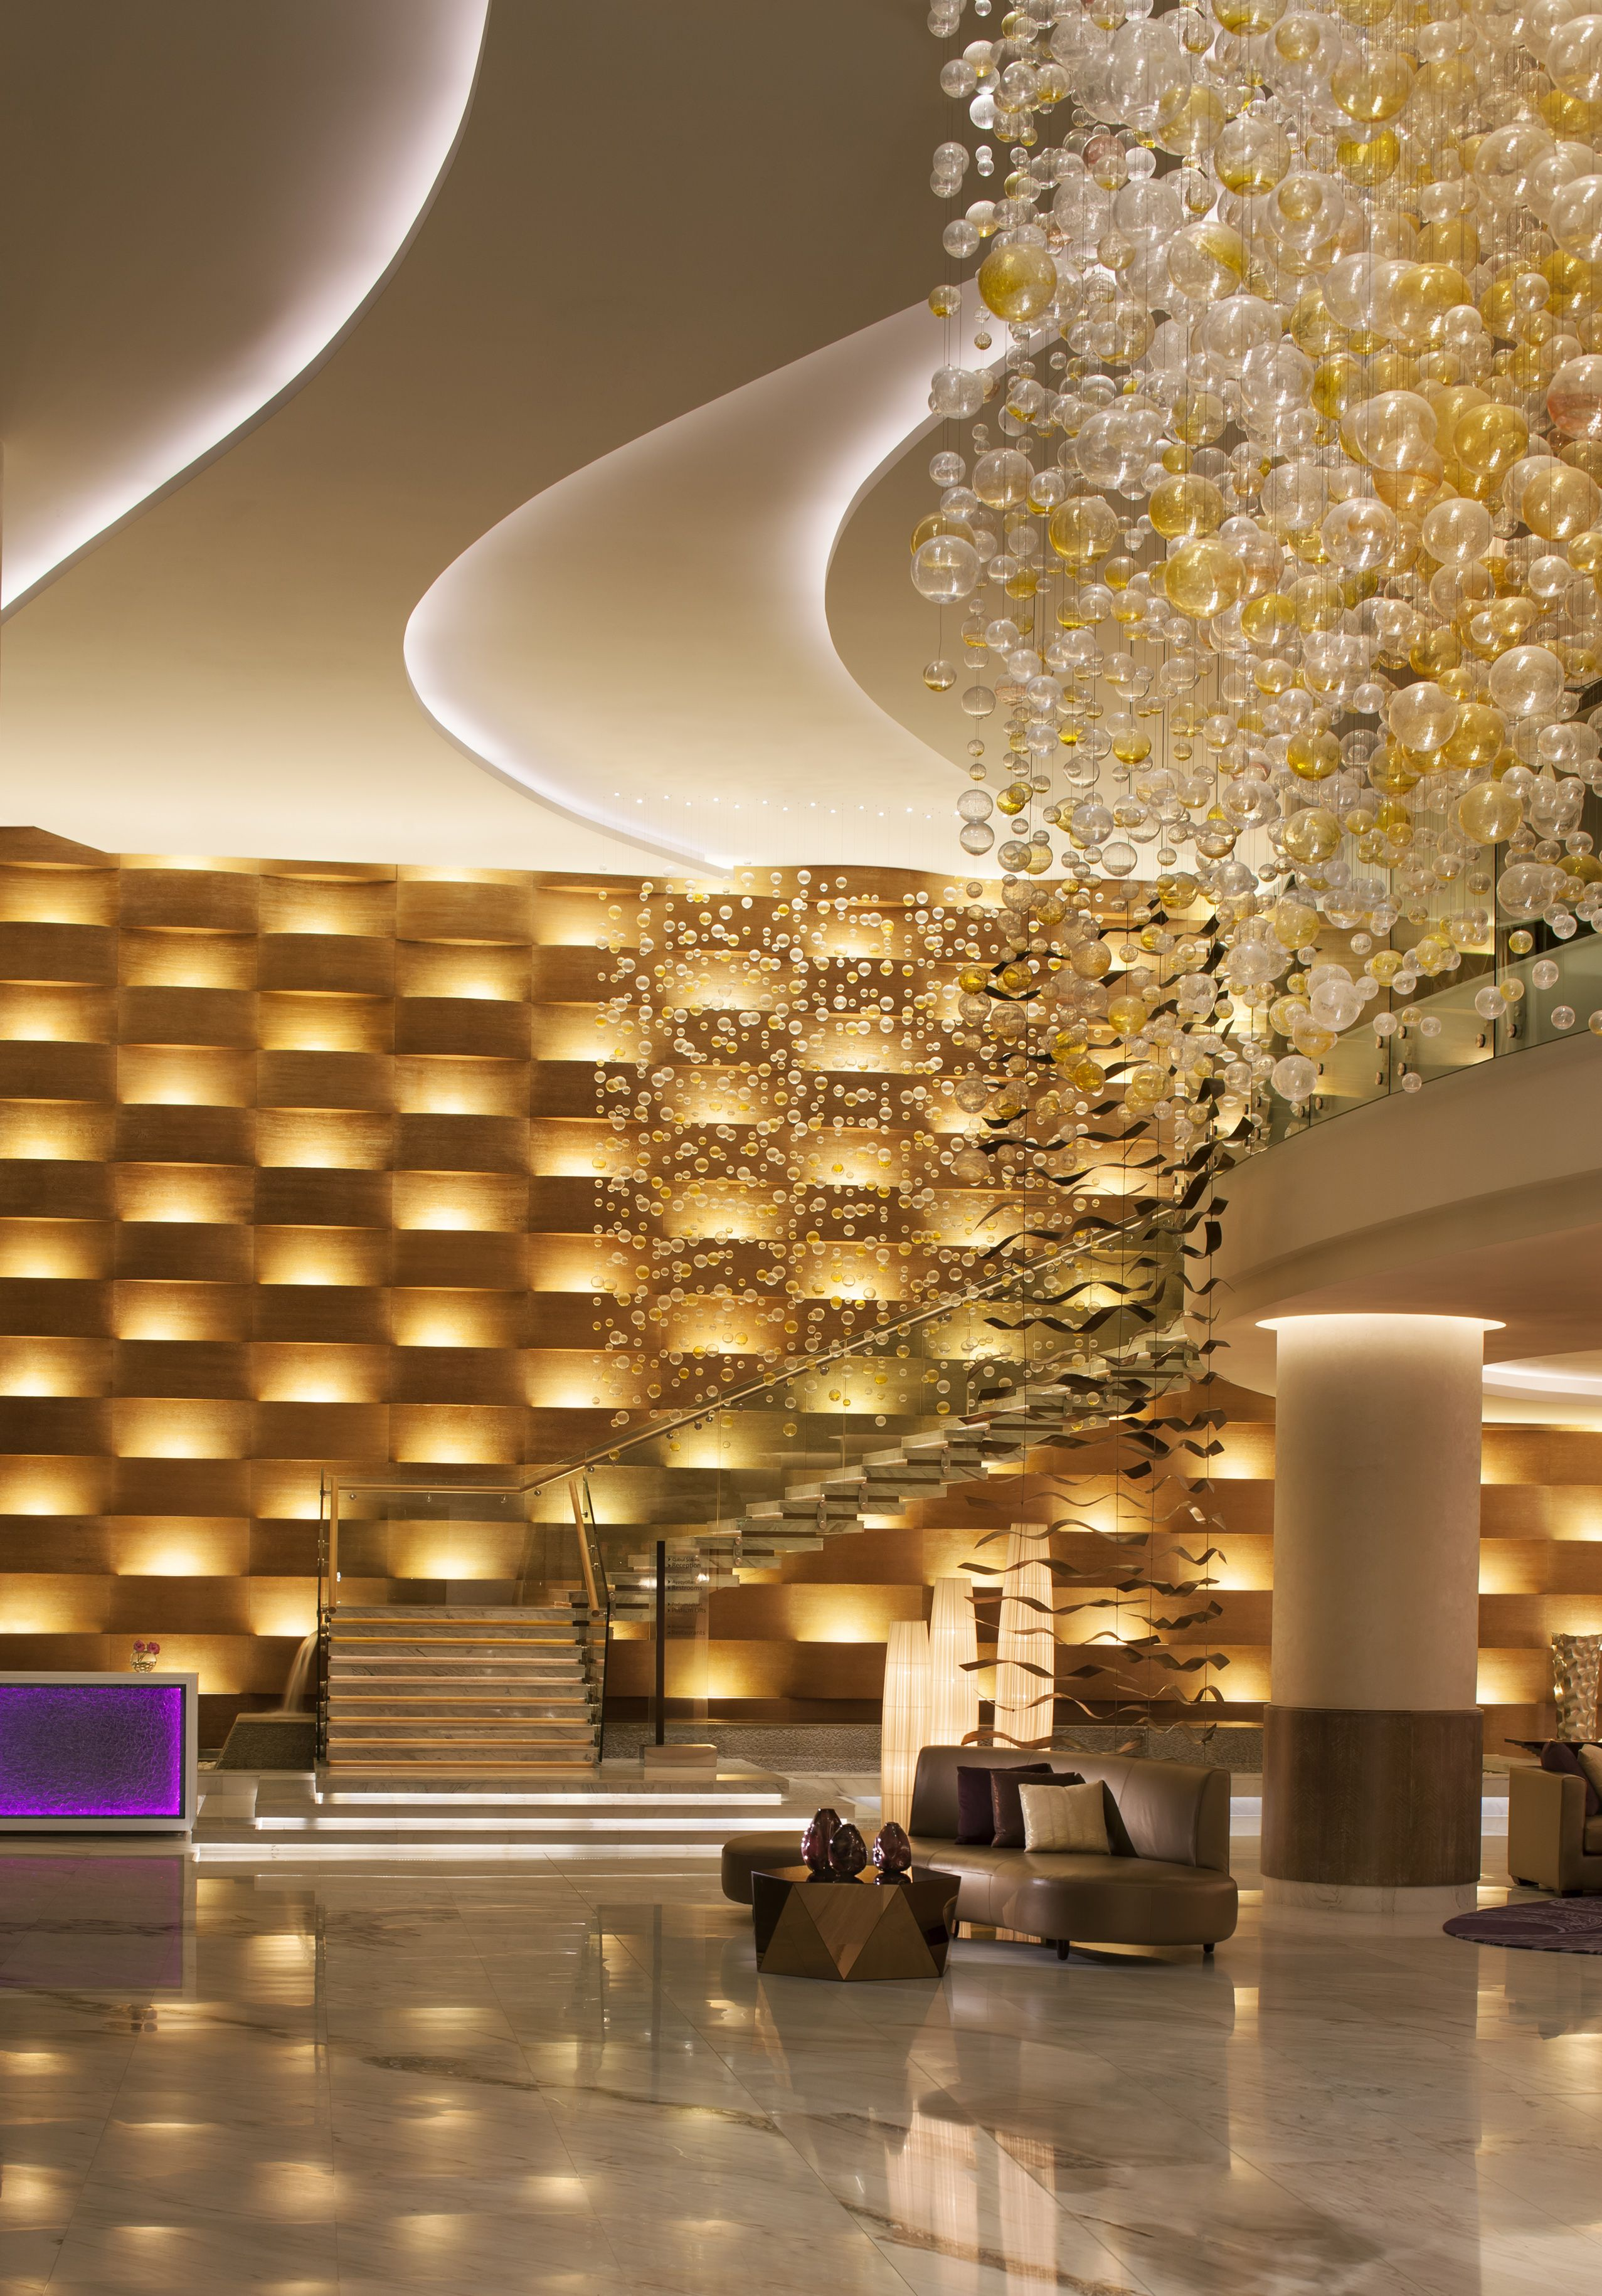 Pin By Tarun Pant On Architecture Hotel Hotel Interior Design Lobby Design Hotel Lobby Design